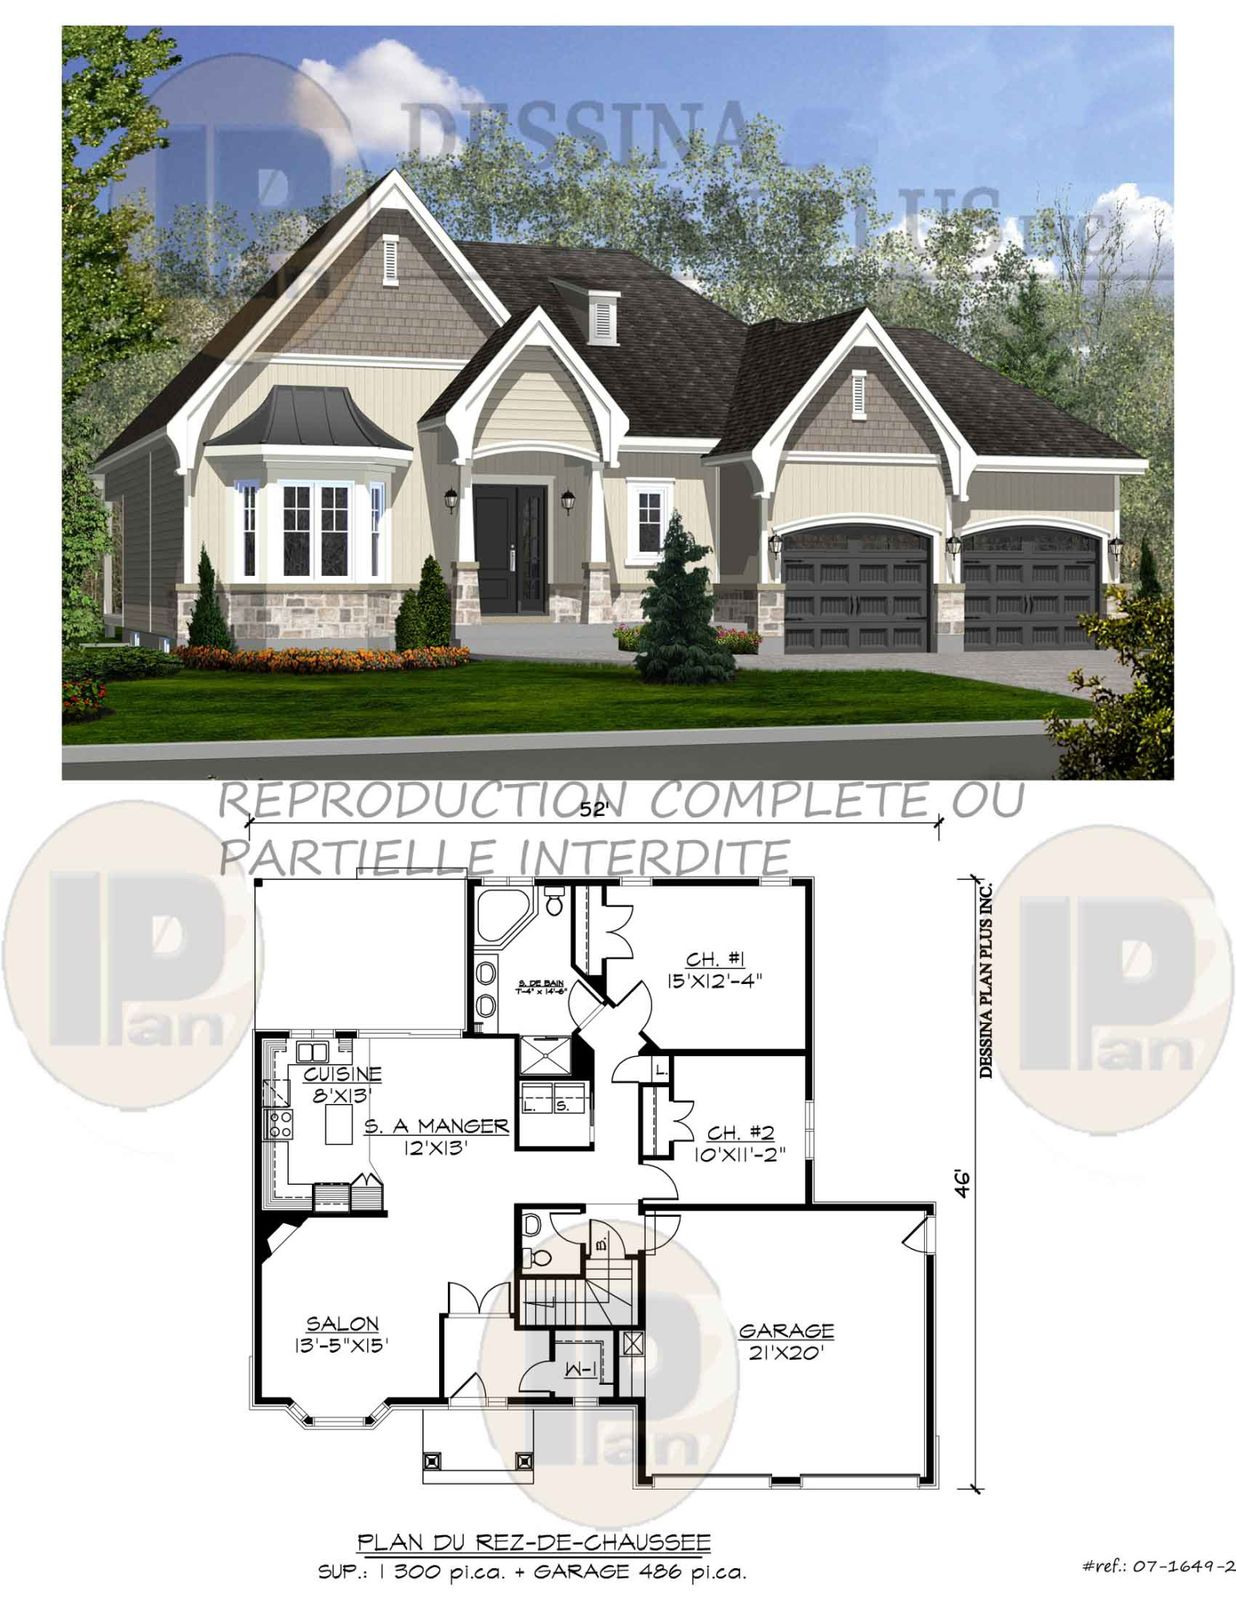 Plans vendre bungalow dessina plan plus inc for Plan maison bungalow avec garage